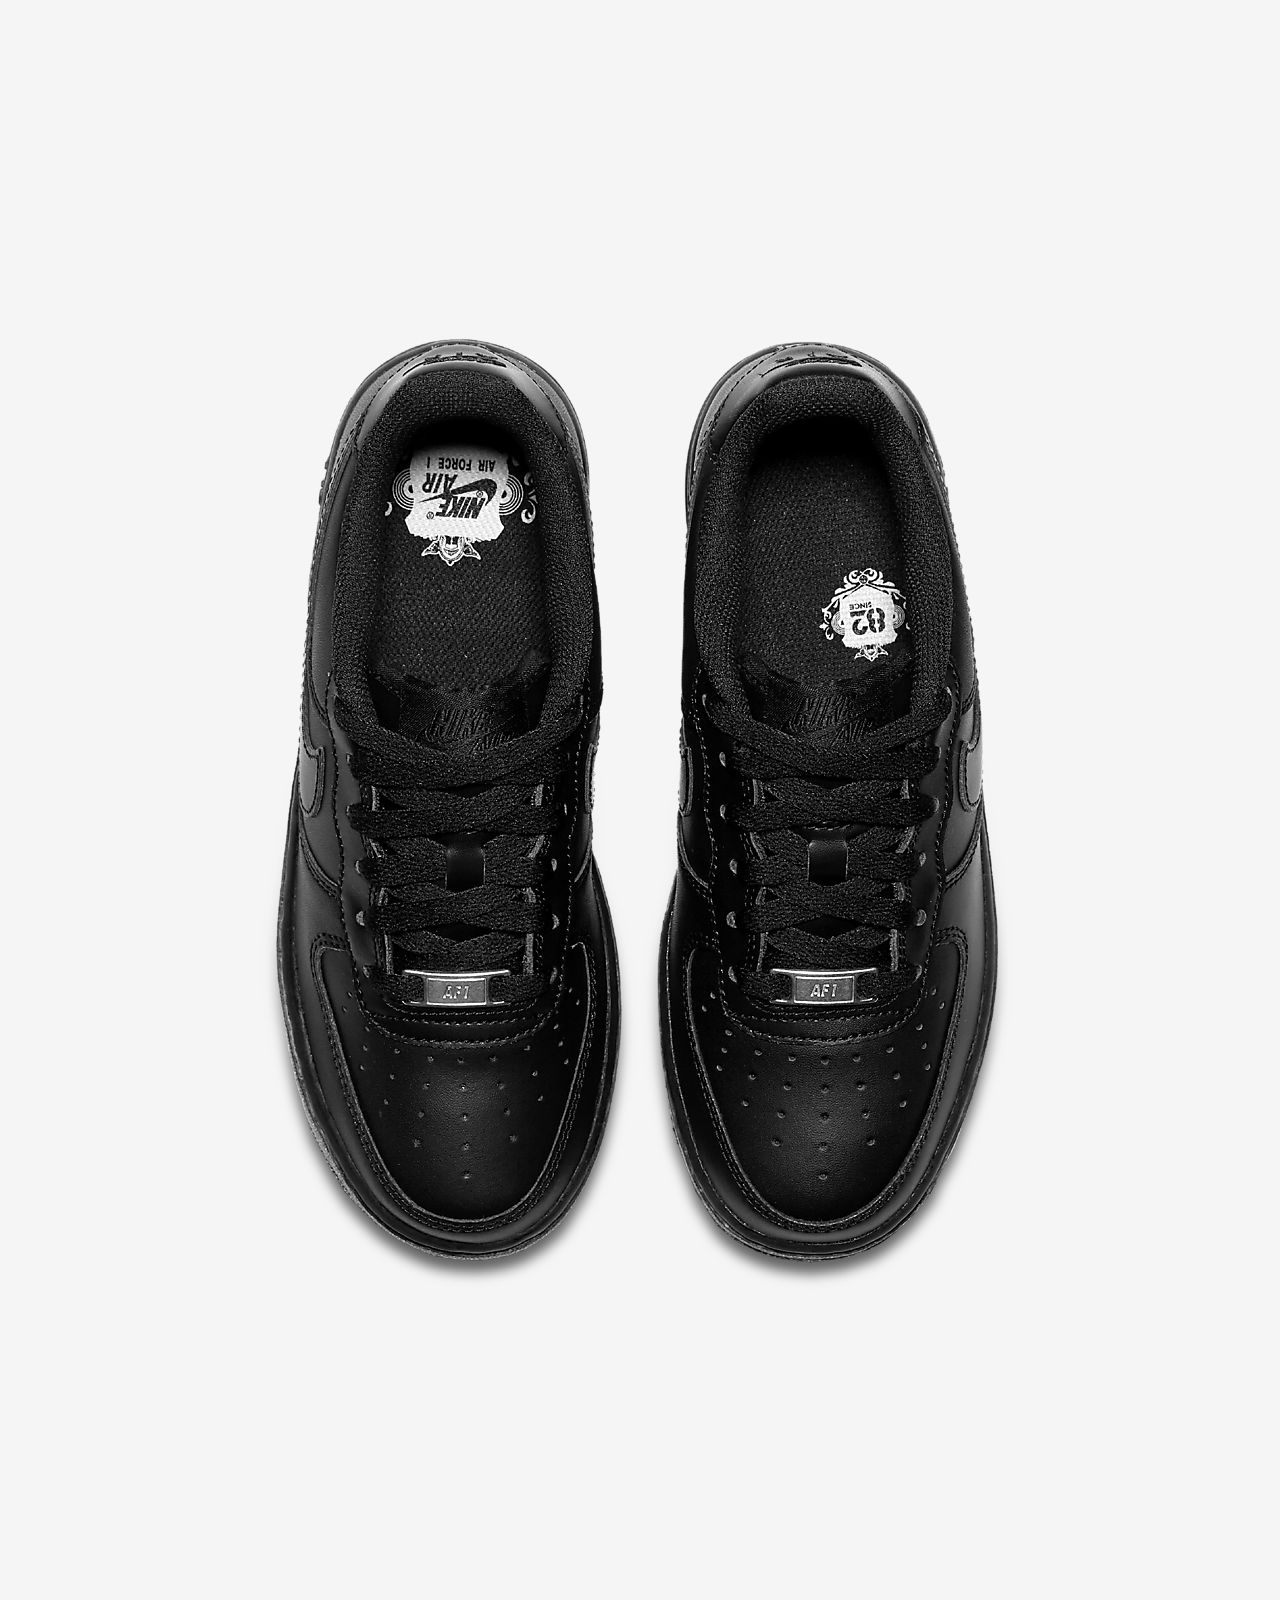 Nike Air Force 1 Big Kids Style Shoes 314192, BlackBlack, 6